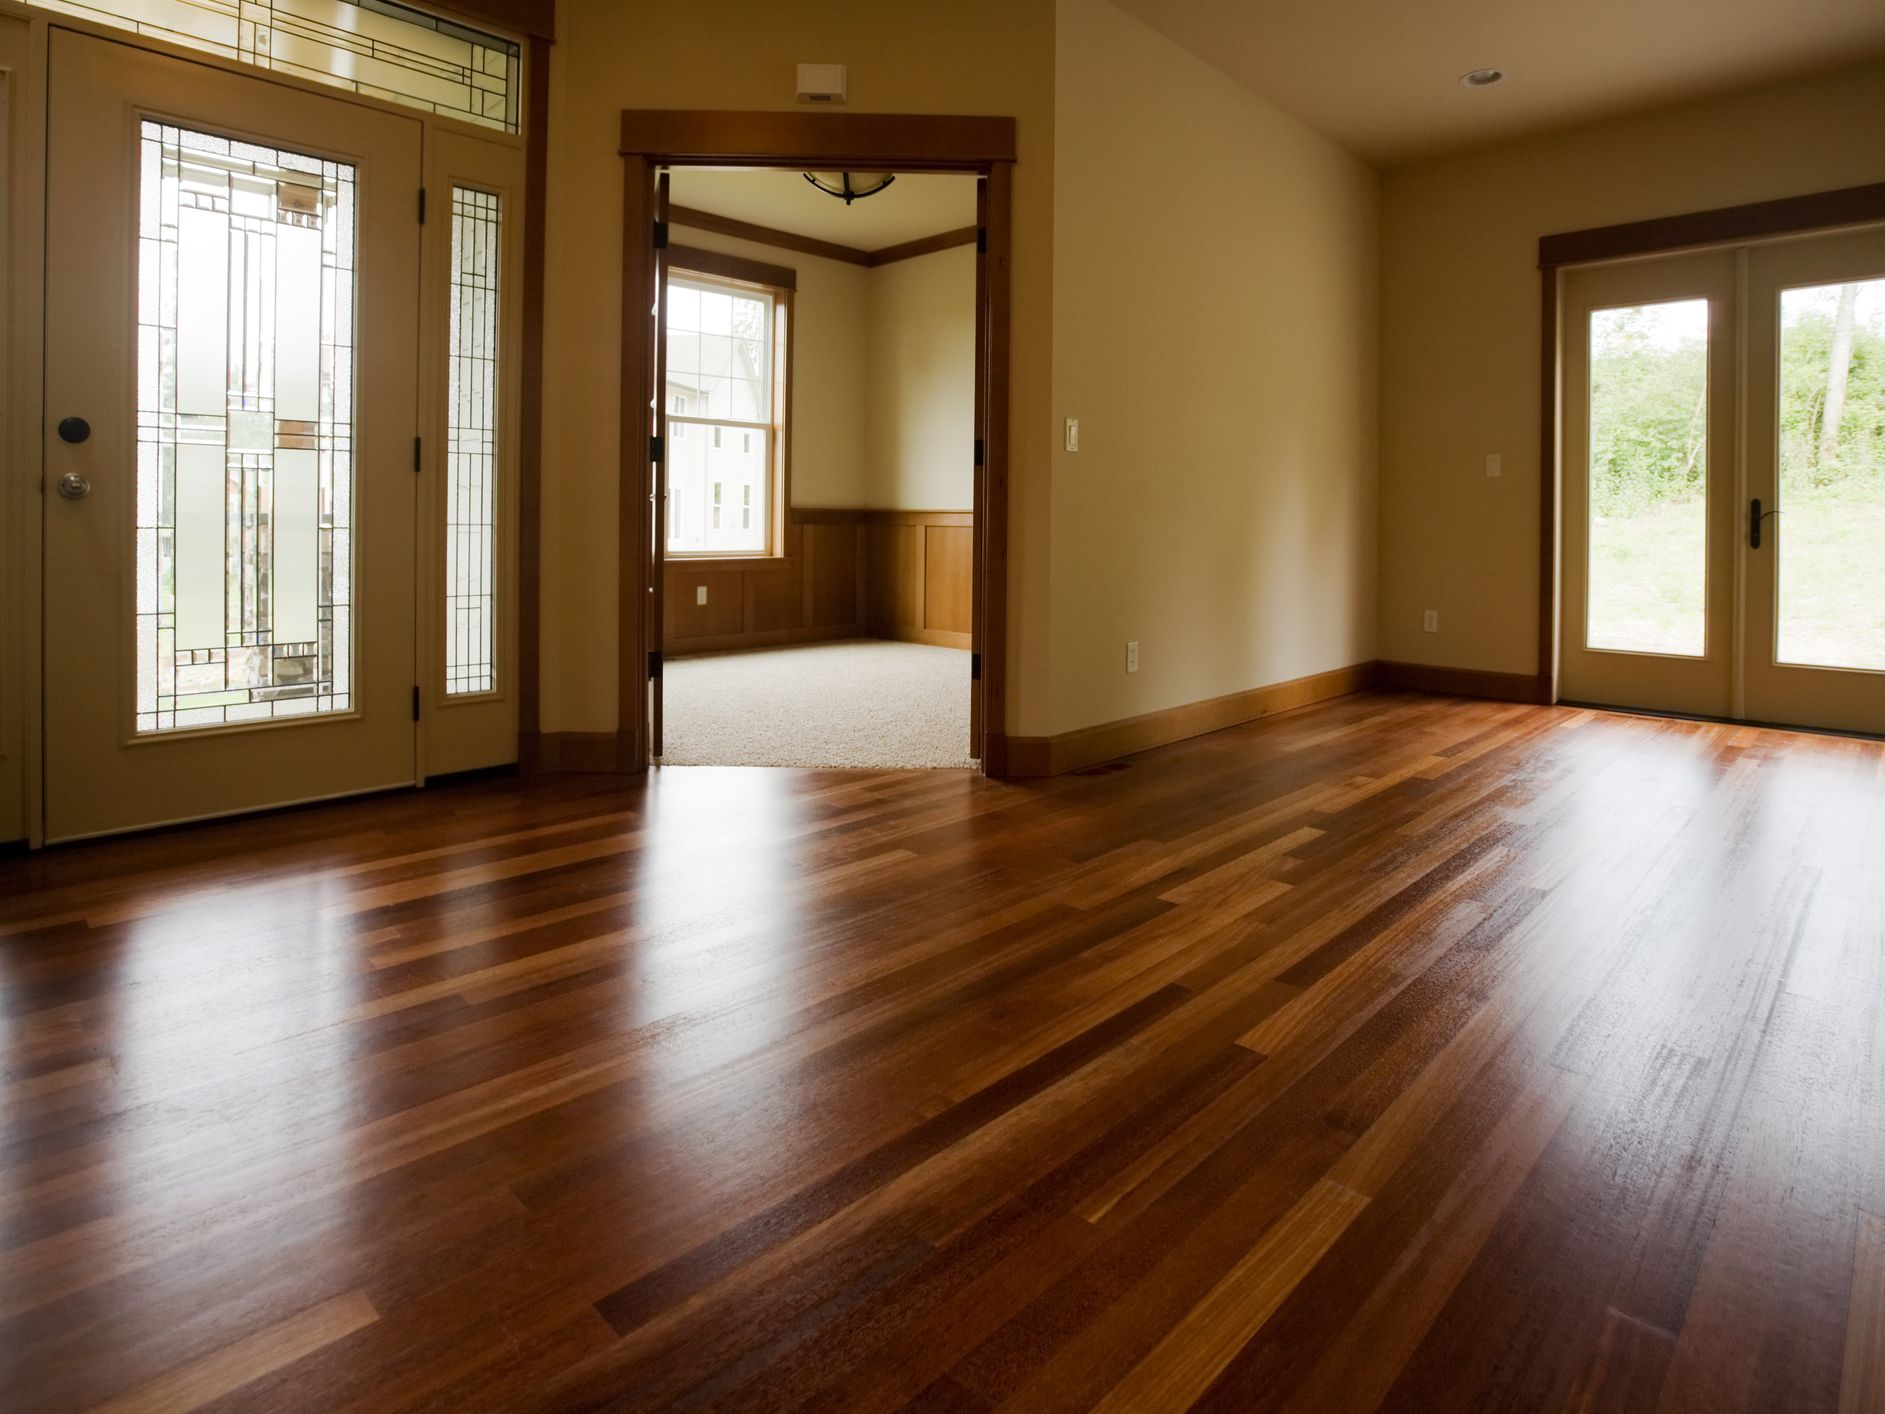 floor and decor mesquite houses flooring picture ideas.htm types of hardwood flooring  buyers guide   types of hardwood flooring  buyers guide